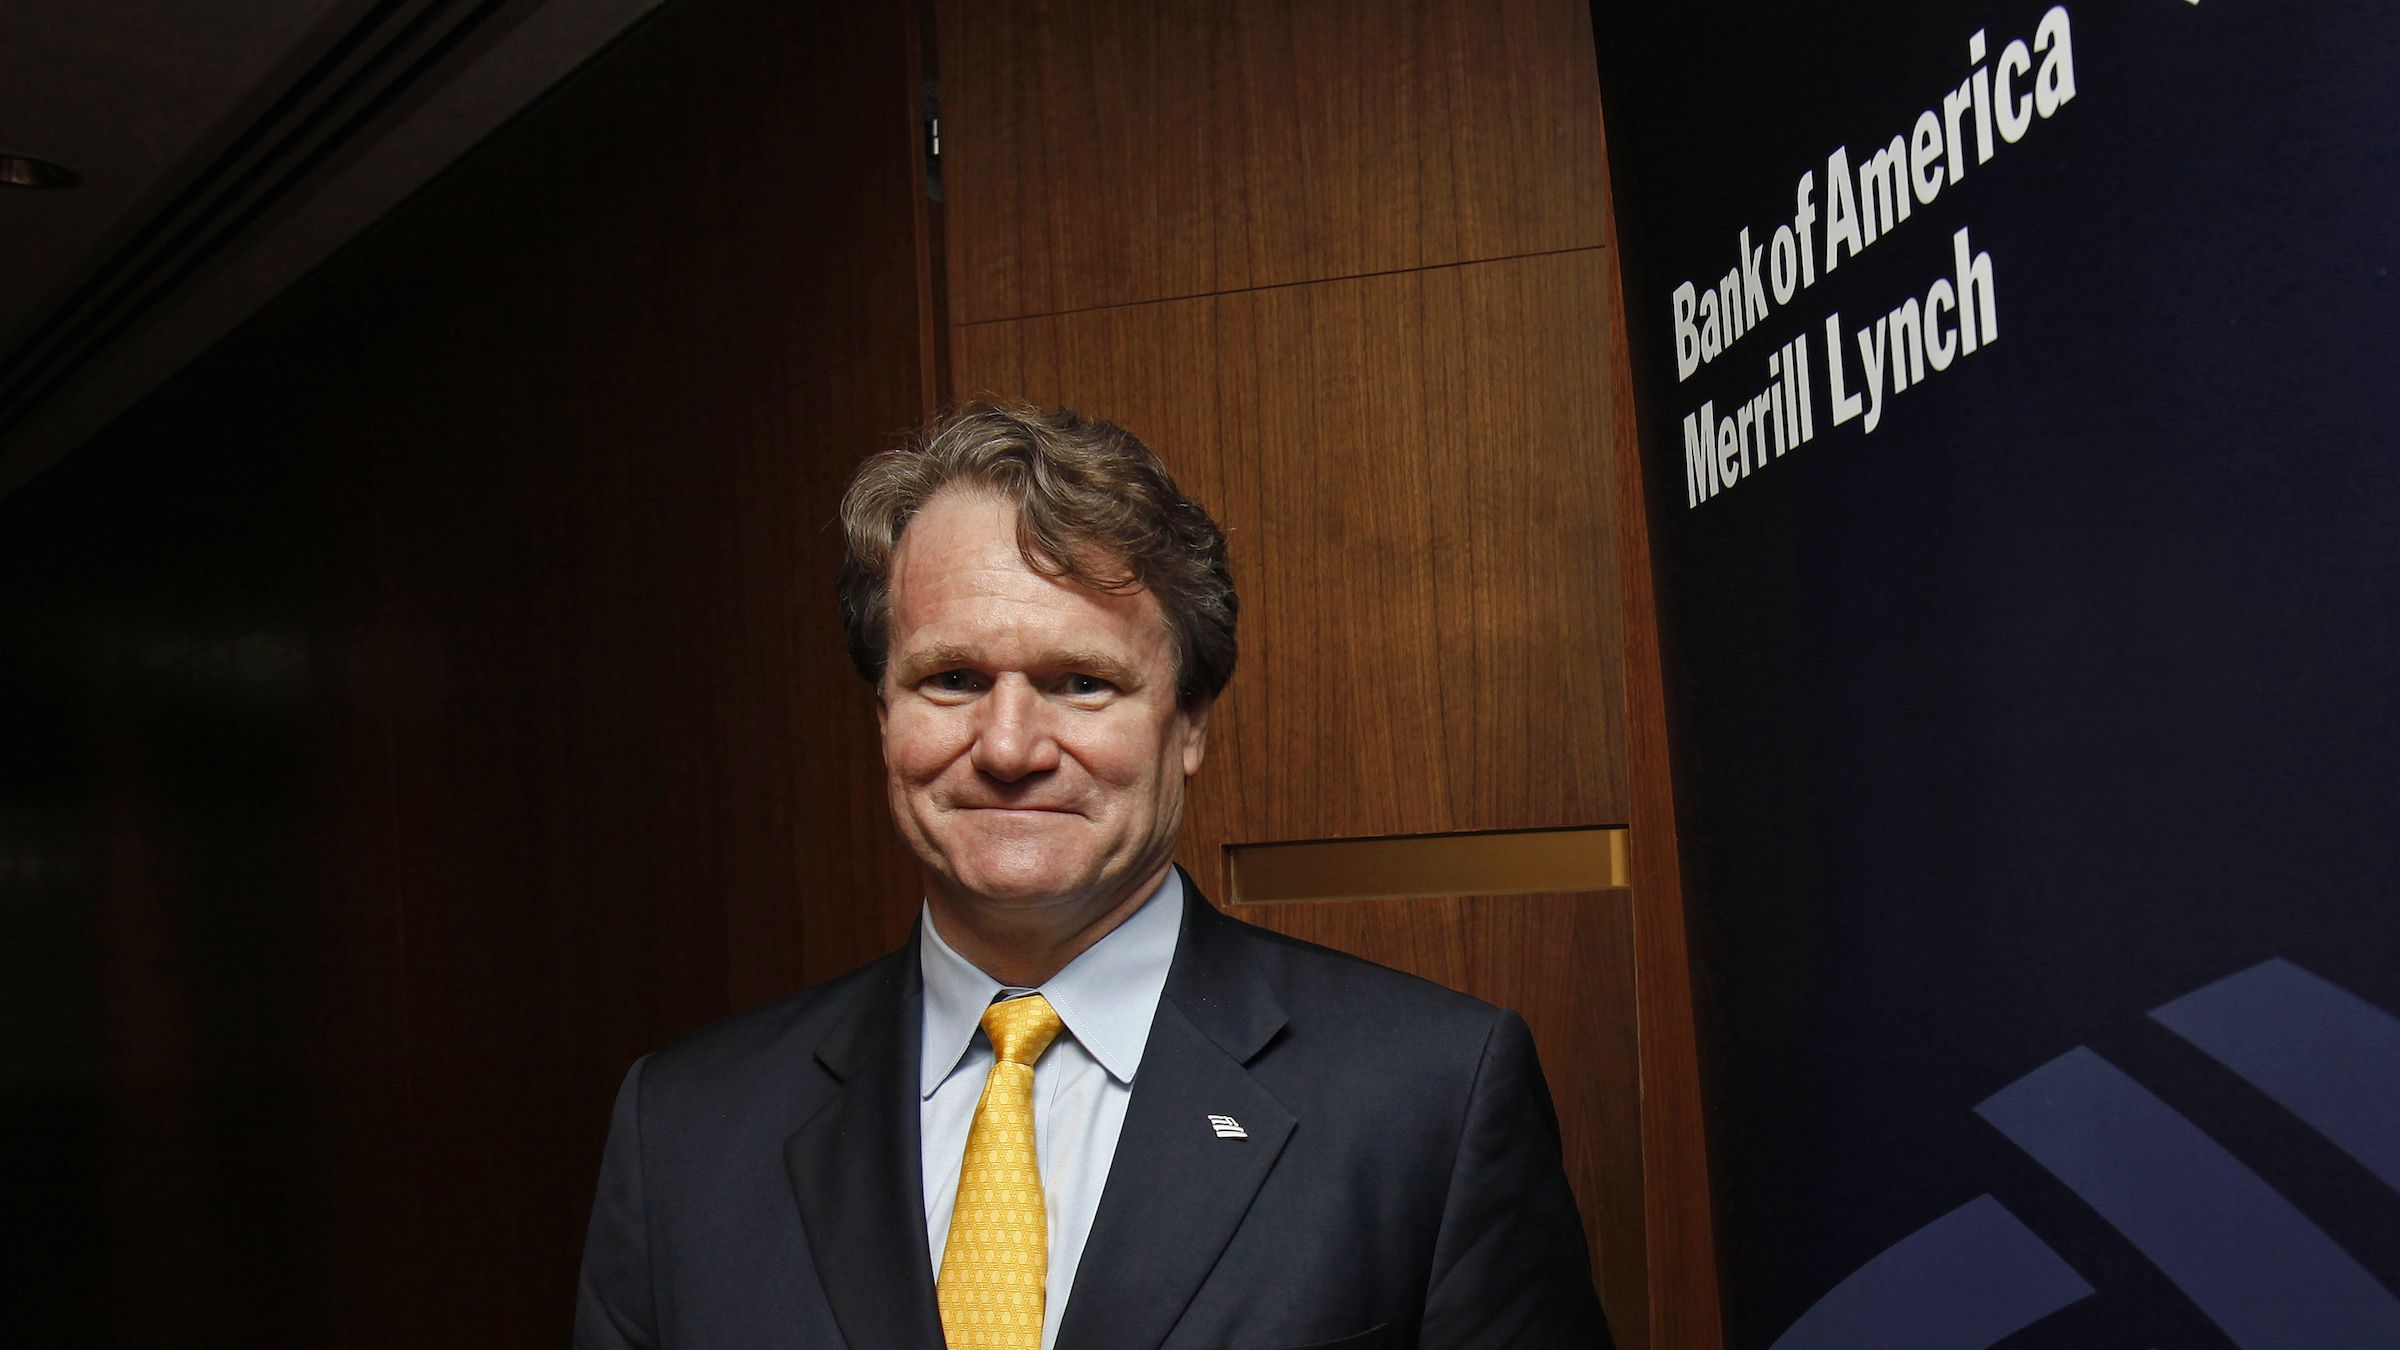 Bank of America Chief Executive Brian Moynihan poses during an interview in Hong Kong March 8, 2013. Bank of America Corp will seek more lending and cash management business with companies in Asia and elsewhere outside its U.S. home turf, Moynihan said, an area ripe for expansion where it lags its big rivals. To match Interview BOFA-MOYNIHAN/ REUTERS/Bobby Yip (CHINA - Tags: BUSINESS HEADSHOT) - RTR3EQ35